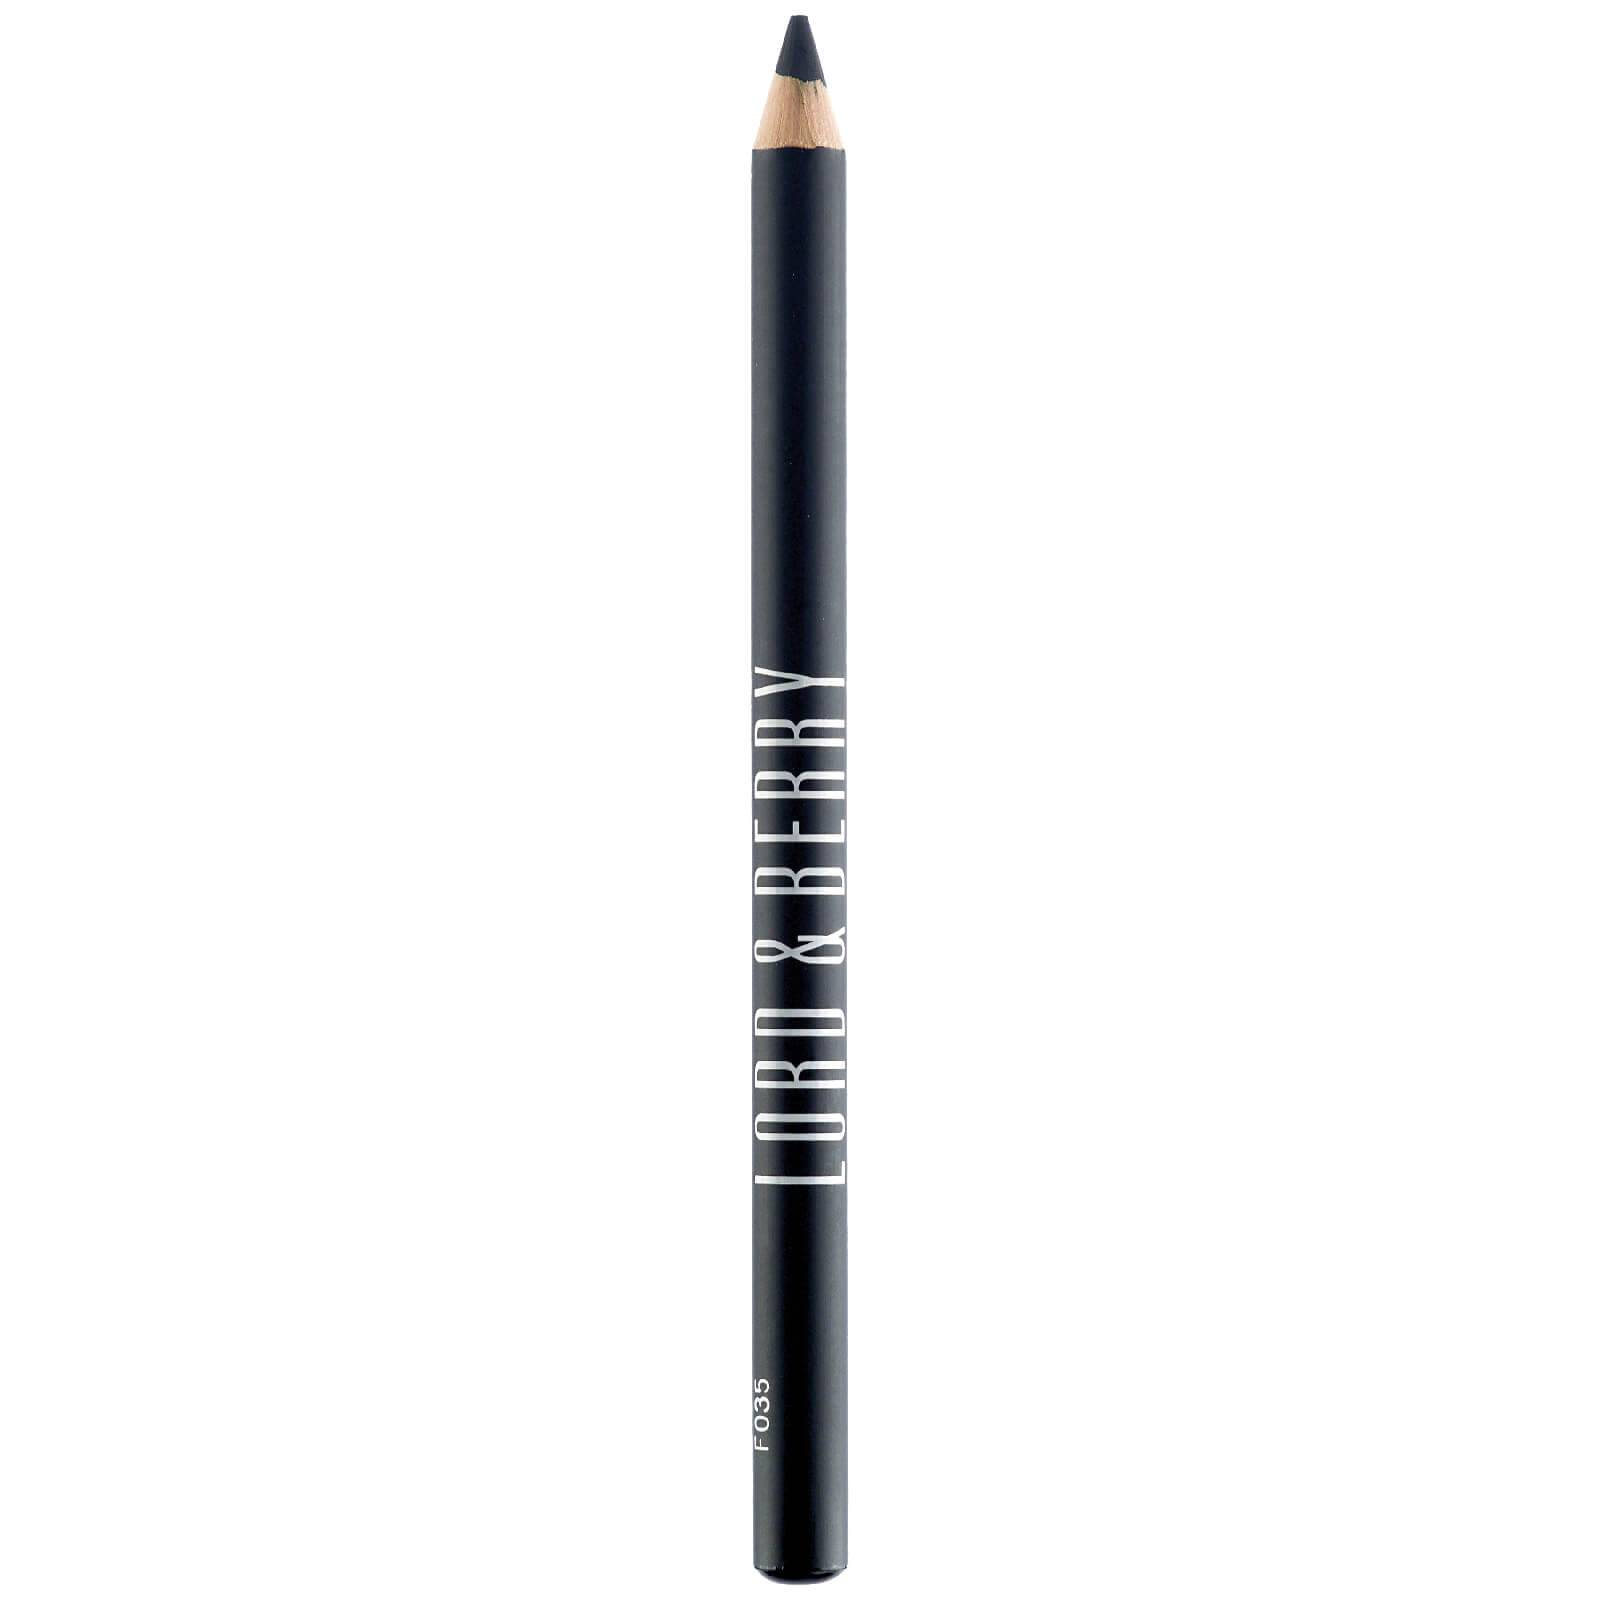 Lord & Berry Crayon Yeux Couture Kohl Kajal Liner Lord & Berry - Noir Intense